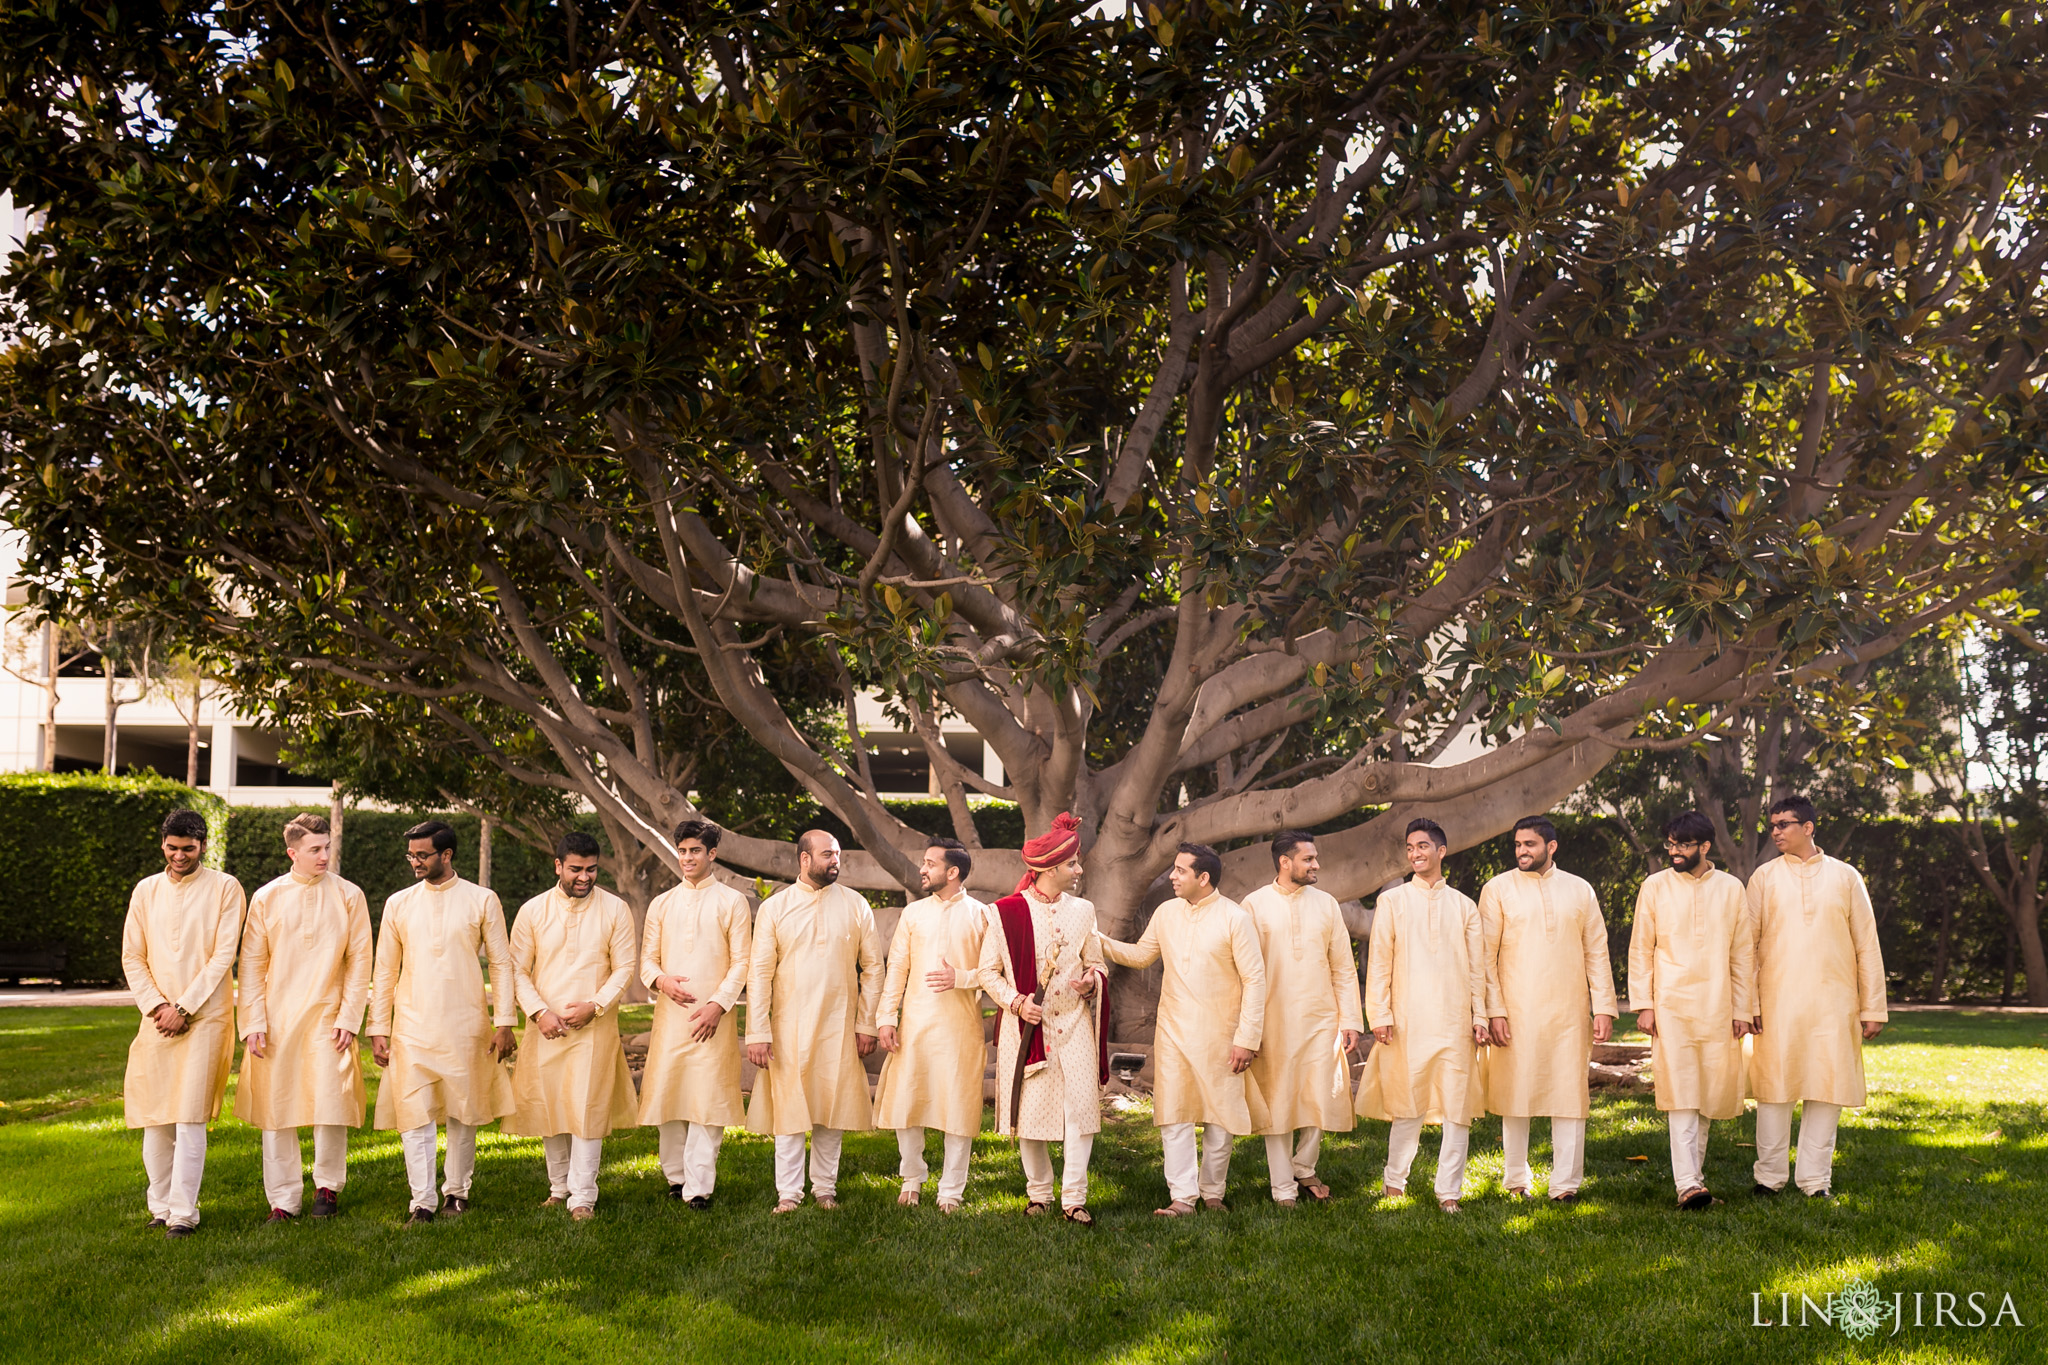 16 hotel irvine indian groomsmen wedding photography 1